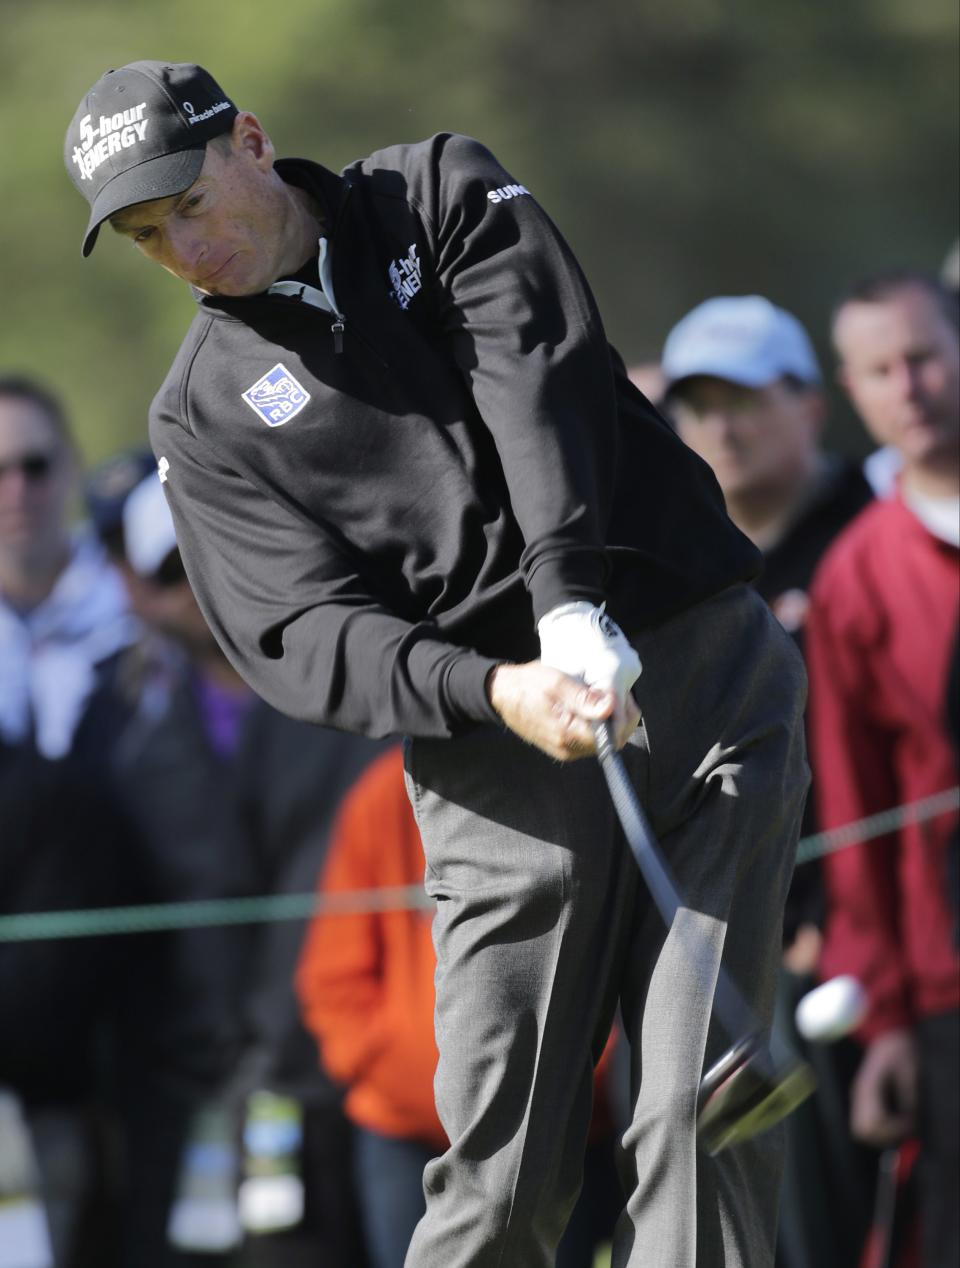 Jim Furyk hits a shot on the 10th hole during the second round of the U.S. Open Championship golf tournament Friday, June 15, 2012, at The Olympic Club in San Francisco. (AP Photo/Eric Gay)